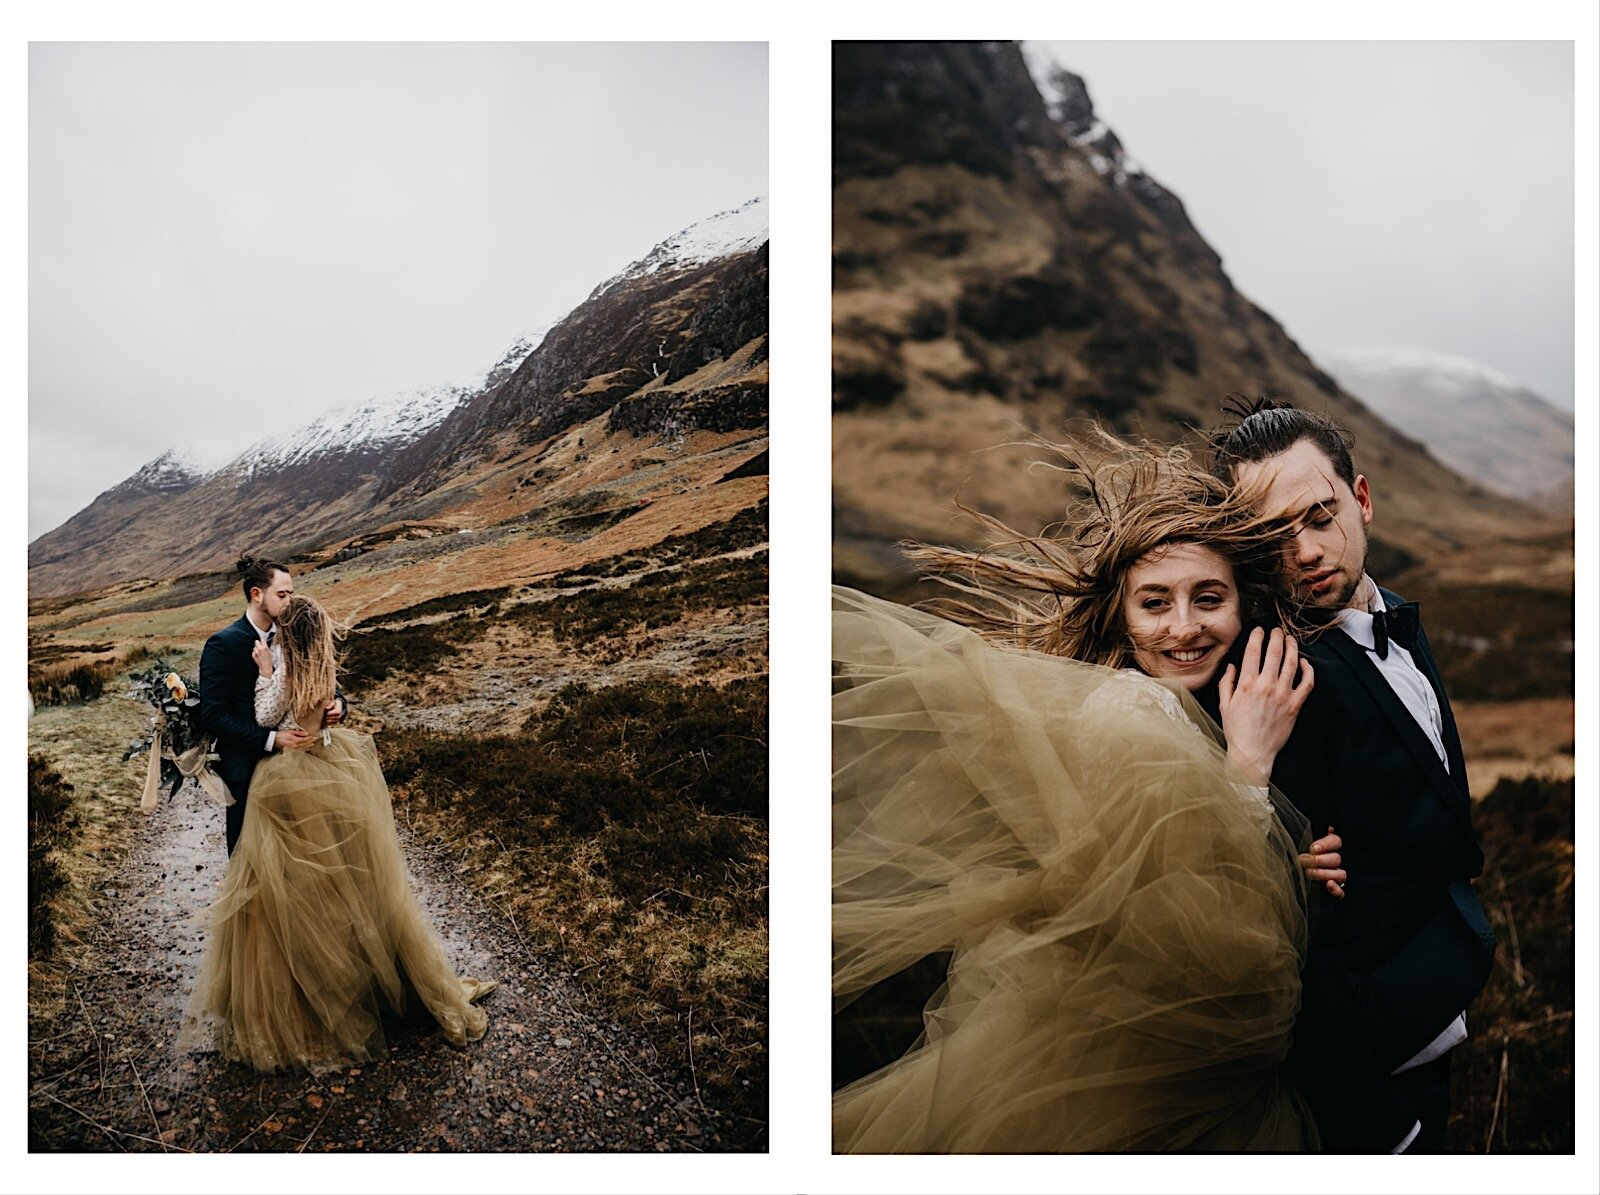 12_scotland_couple_shoot_lety_photography (33 von 42)_scotland_couple_shoot_lety_photography (11 von 42).jpg